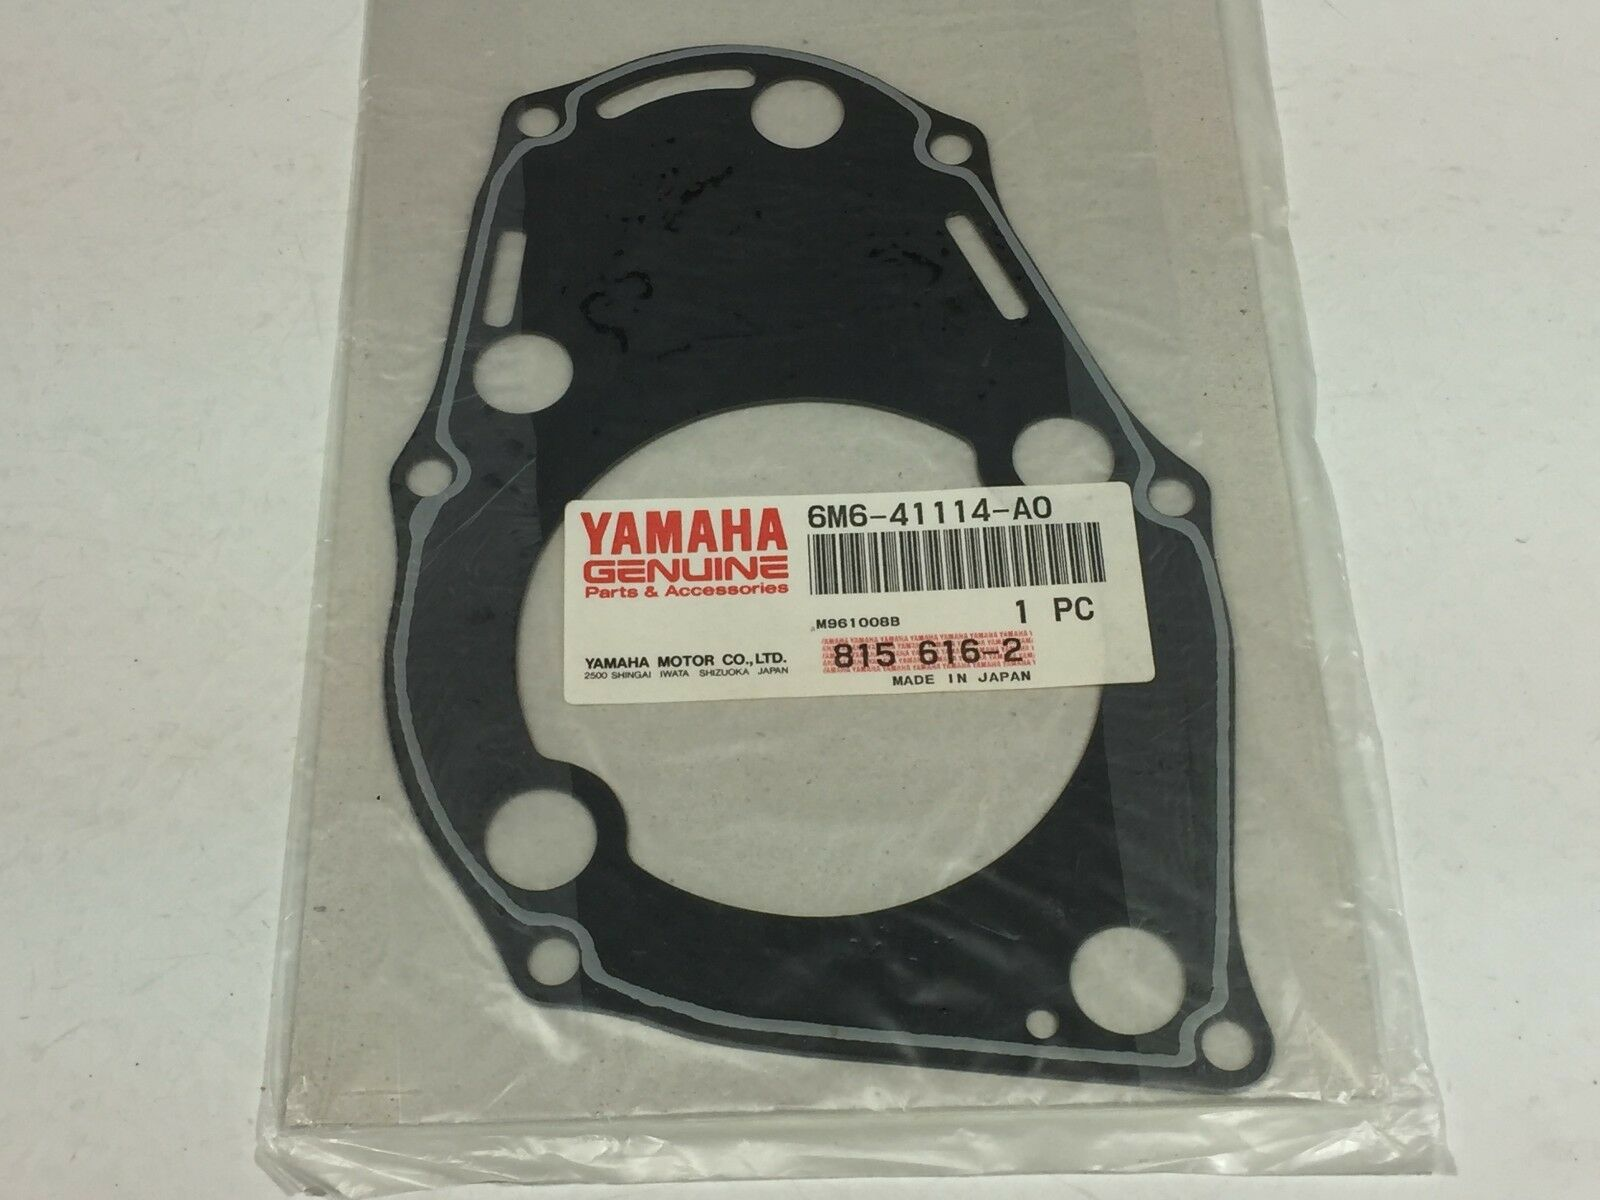 NEW OEM YAMAHA WR650 WR 650 EXHAUST OUTER GASKET 6M6-41114-A0-00